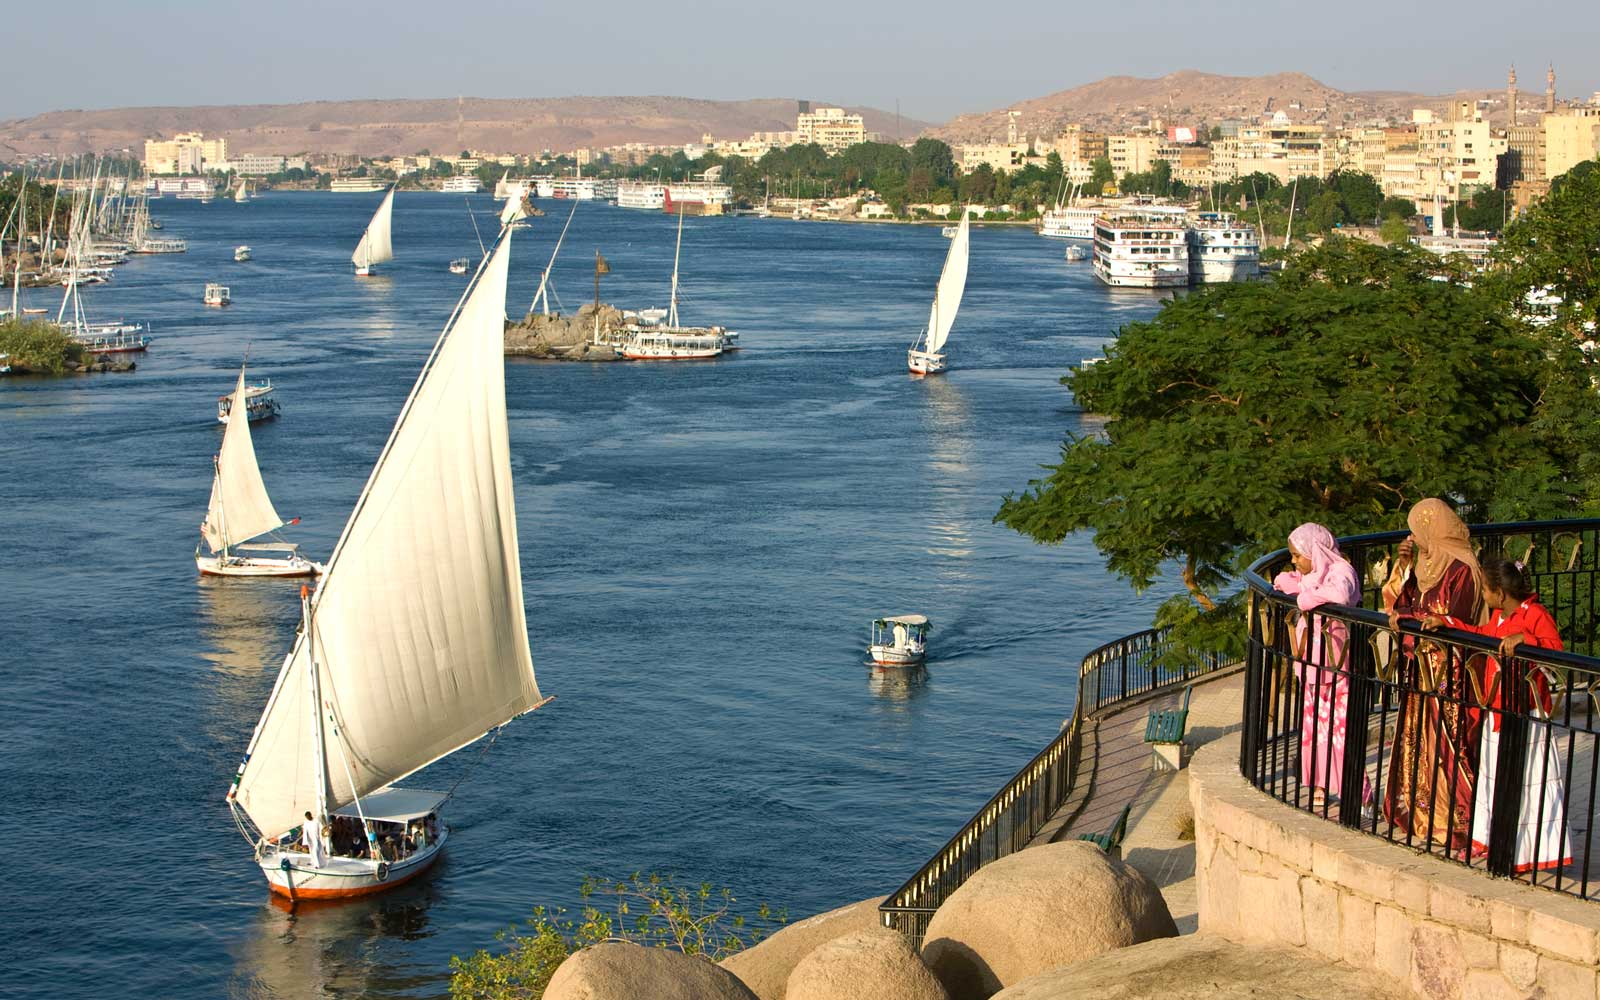 How to See the Nile River